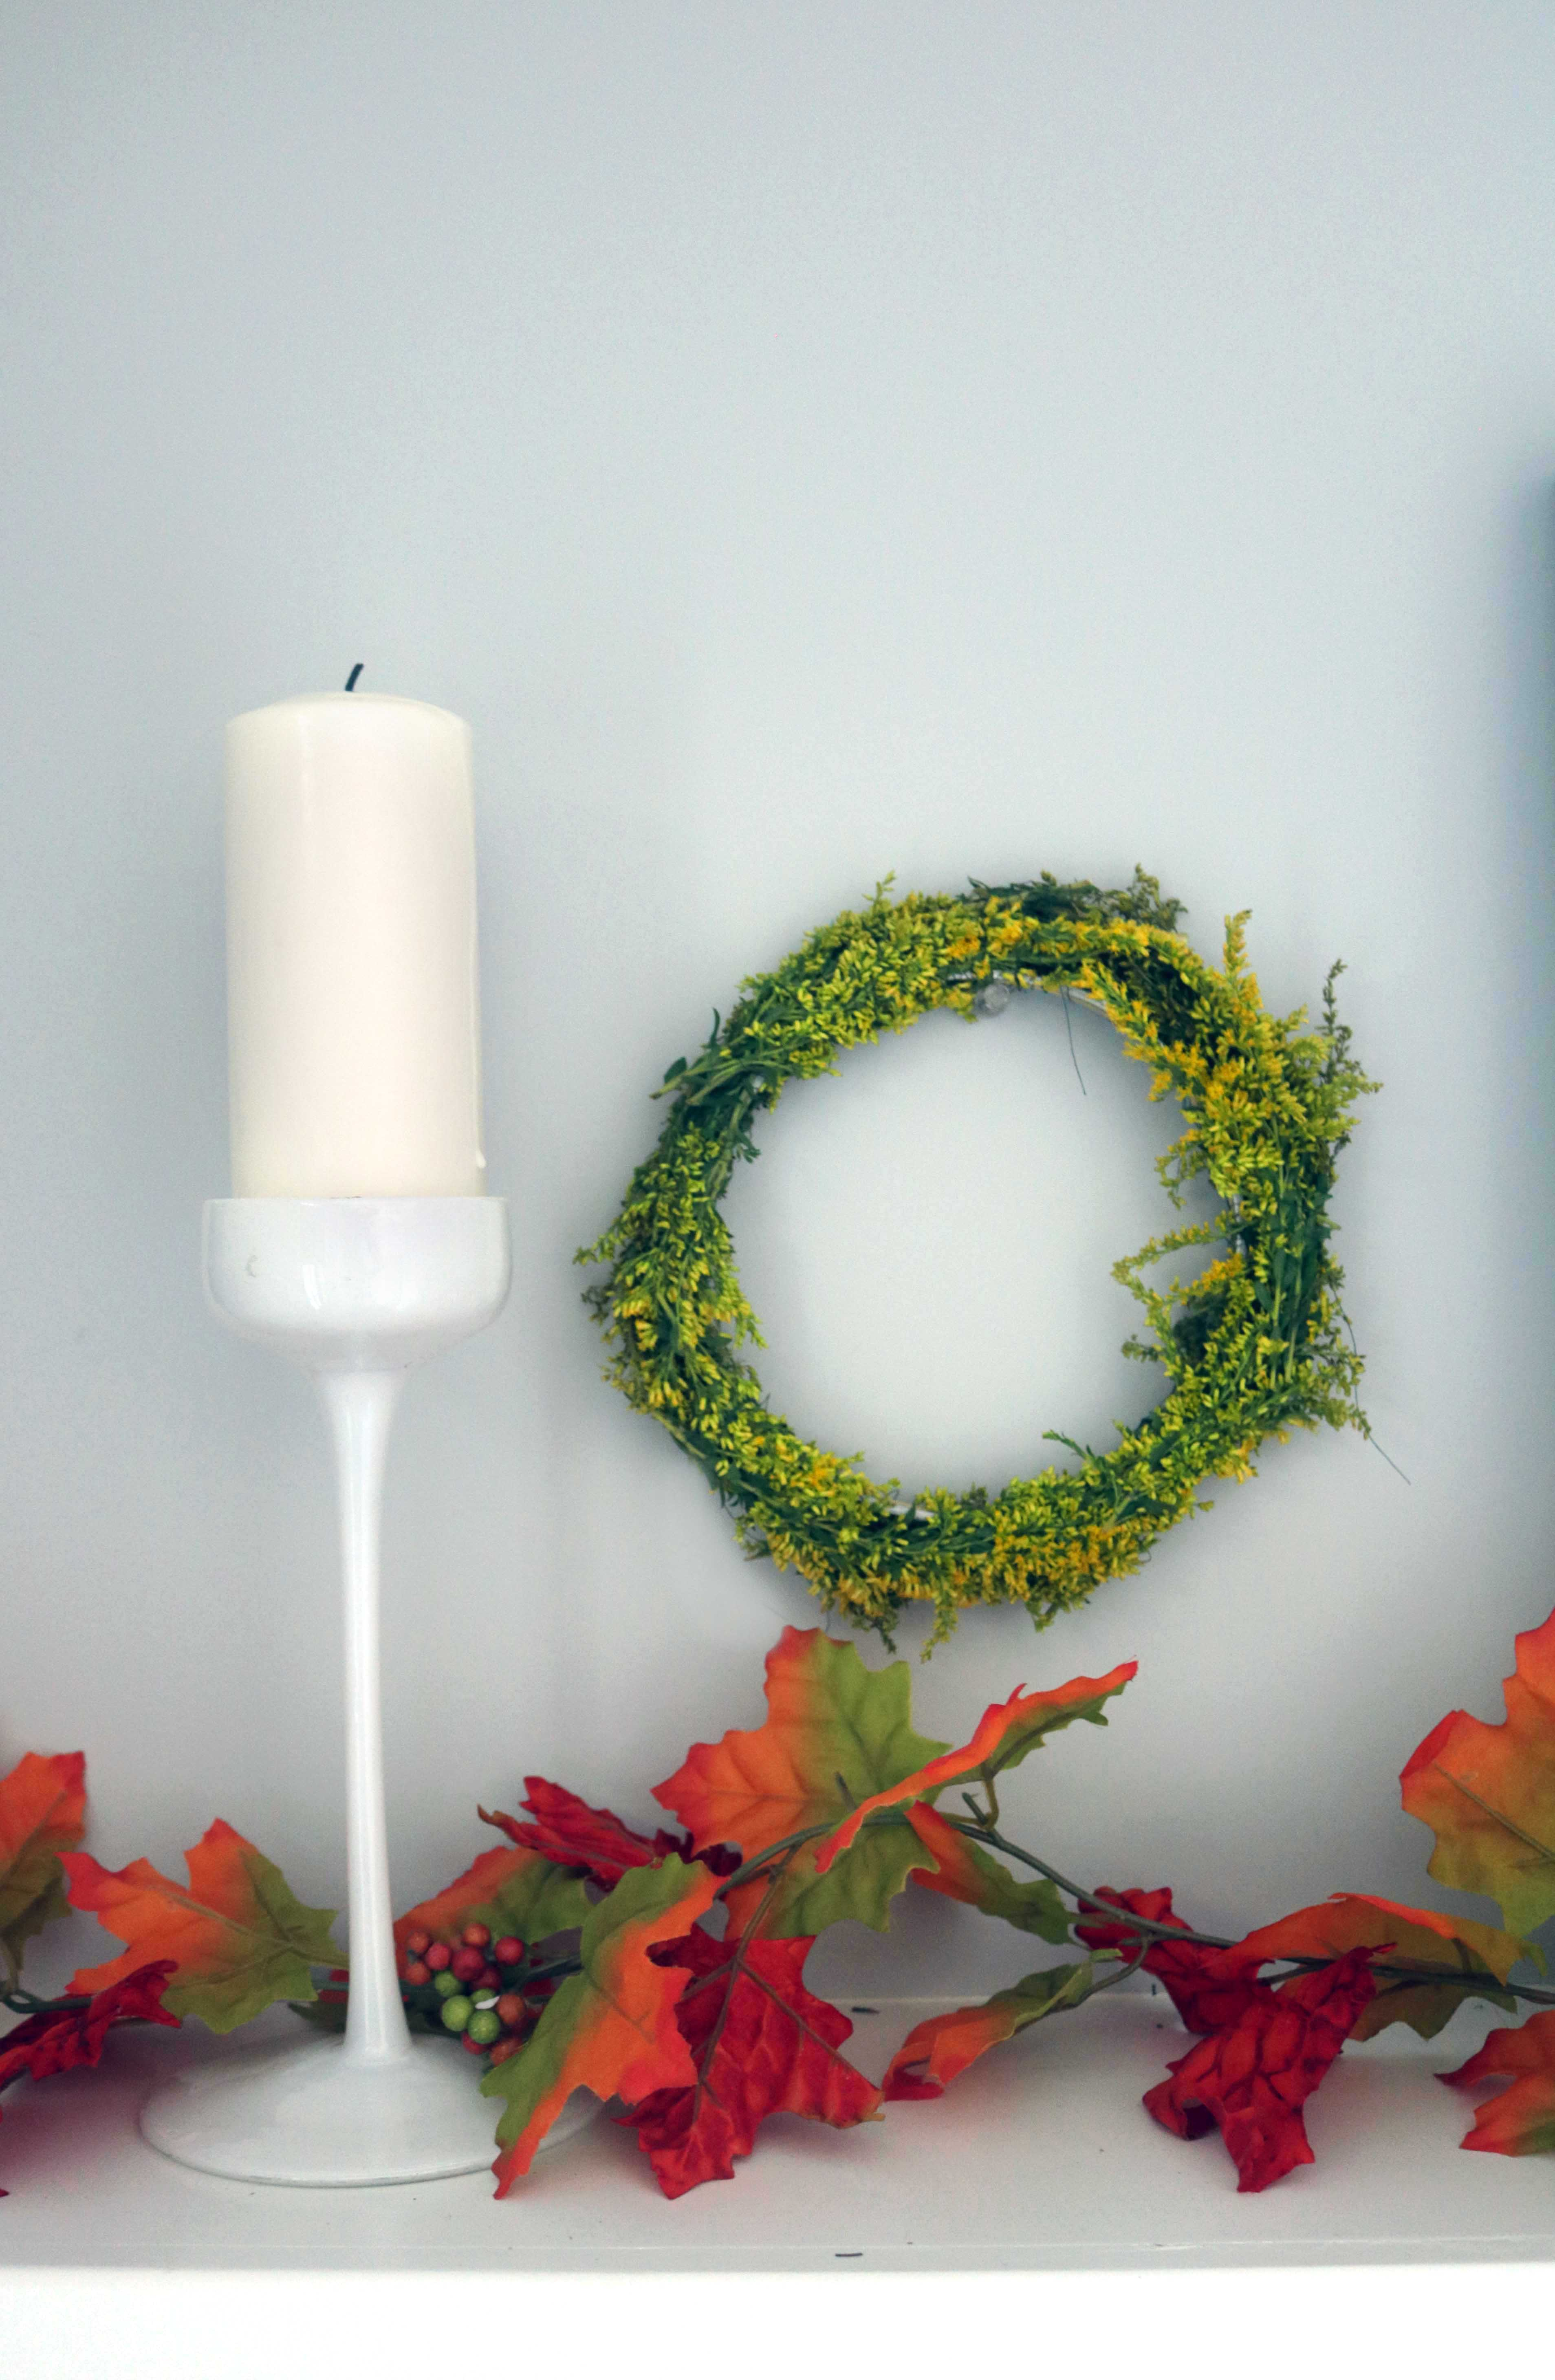 Natural autumn wreath on an embroidery hoop.